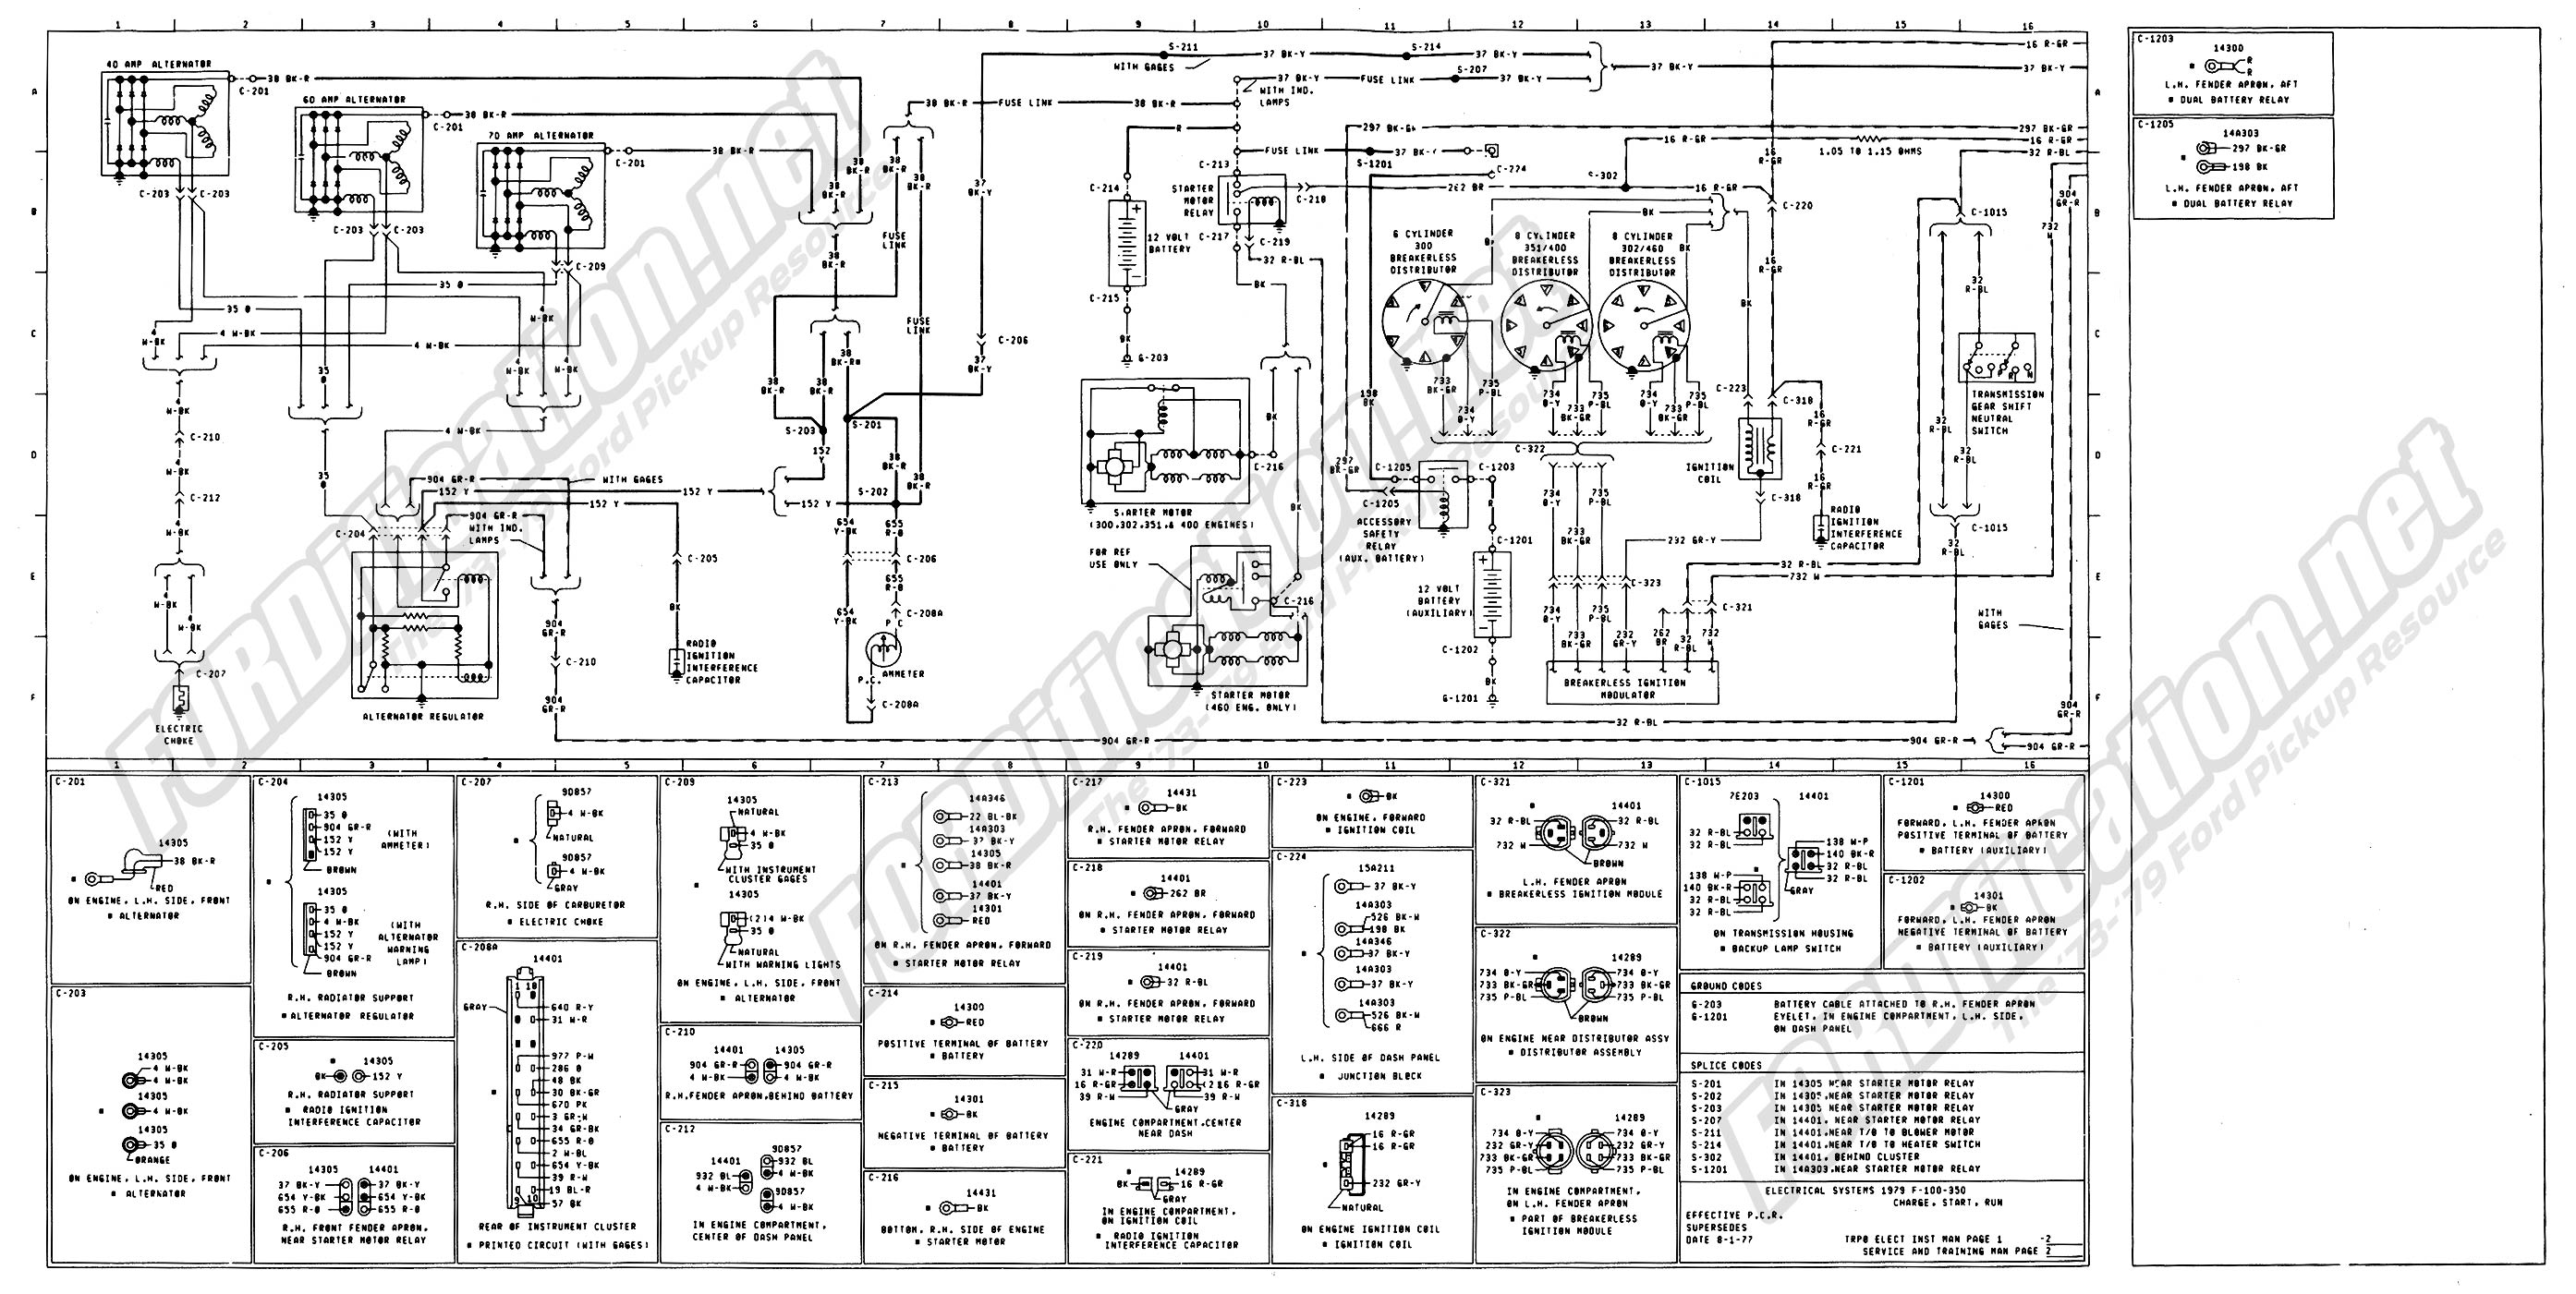 wiring_79master_2of9 1973 1979 ford truck wiring diagrams & schematics fordification net 1999 F150 Radio Wiring Diagram at metegol.co